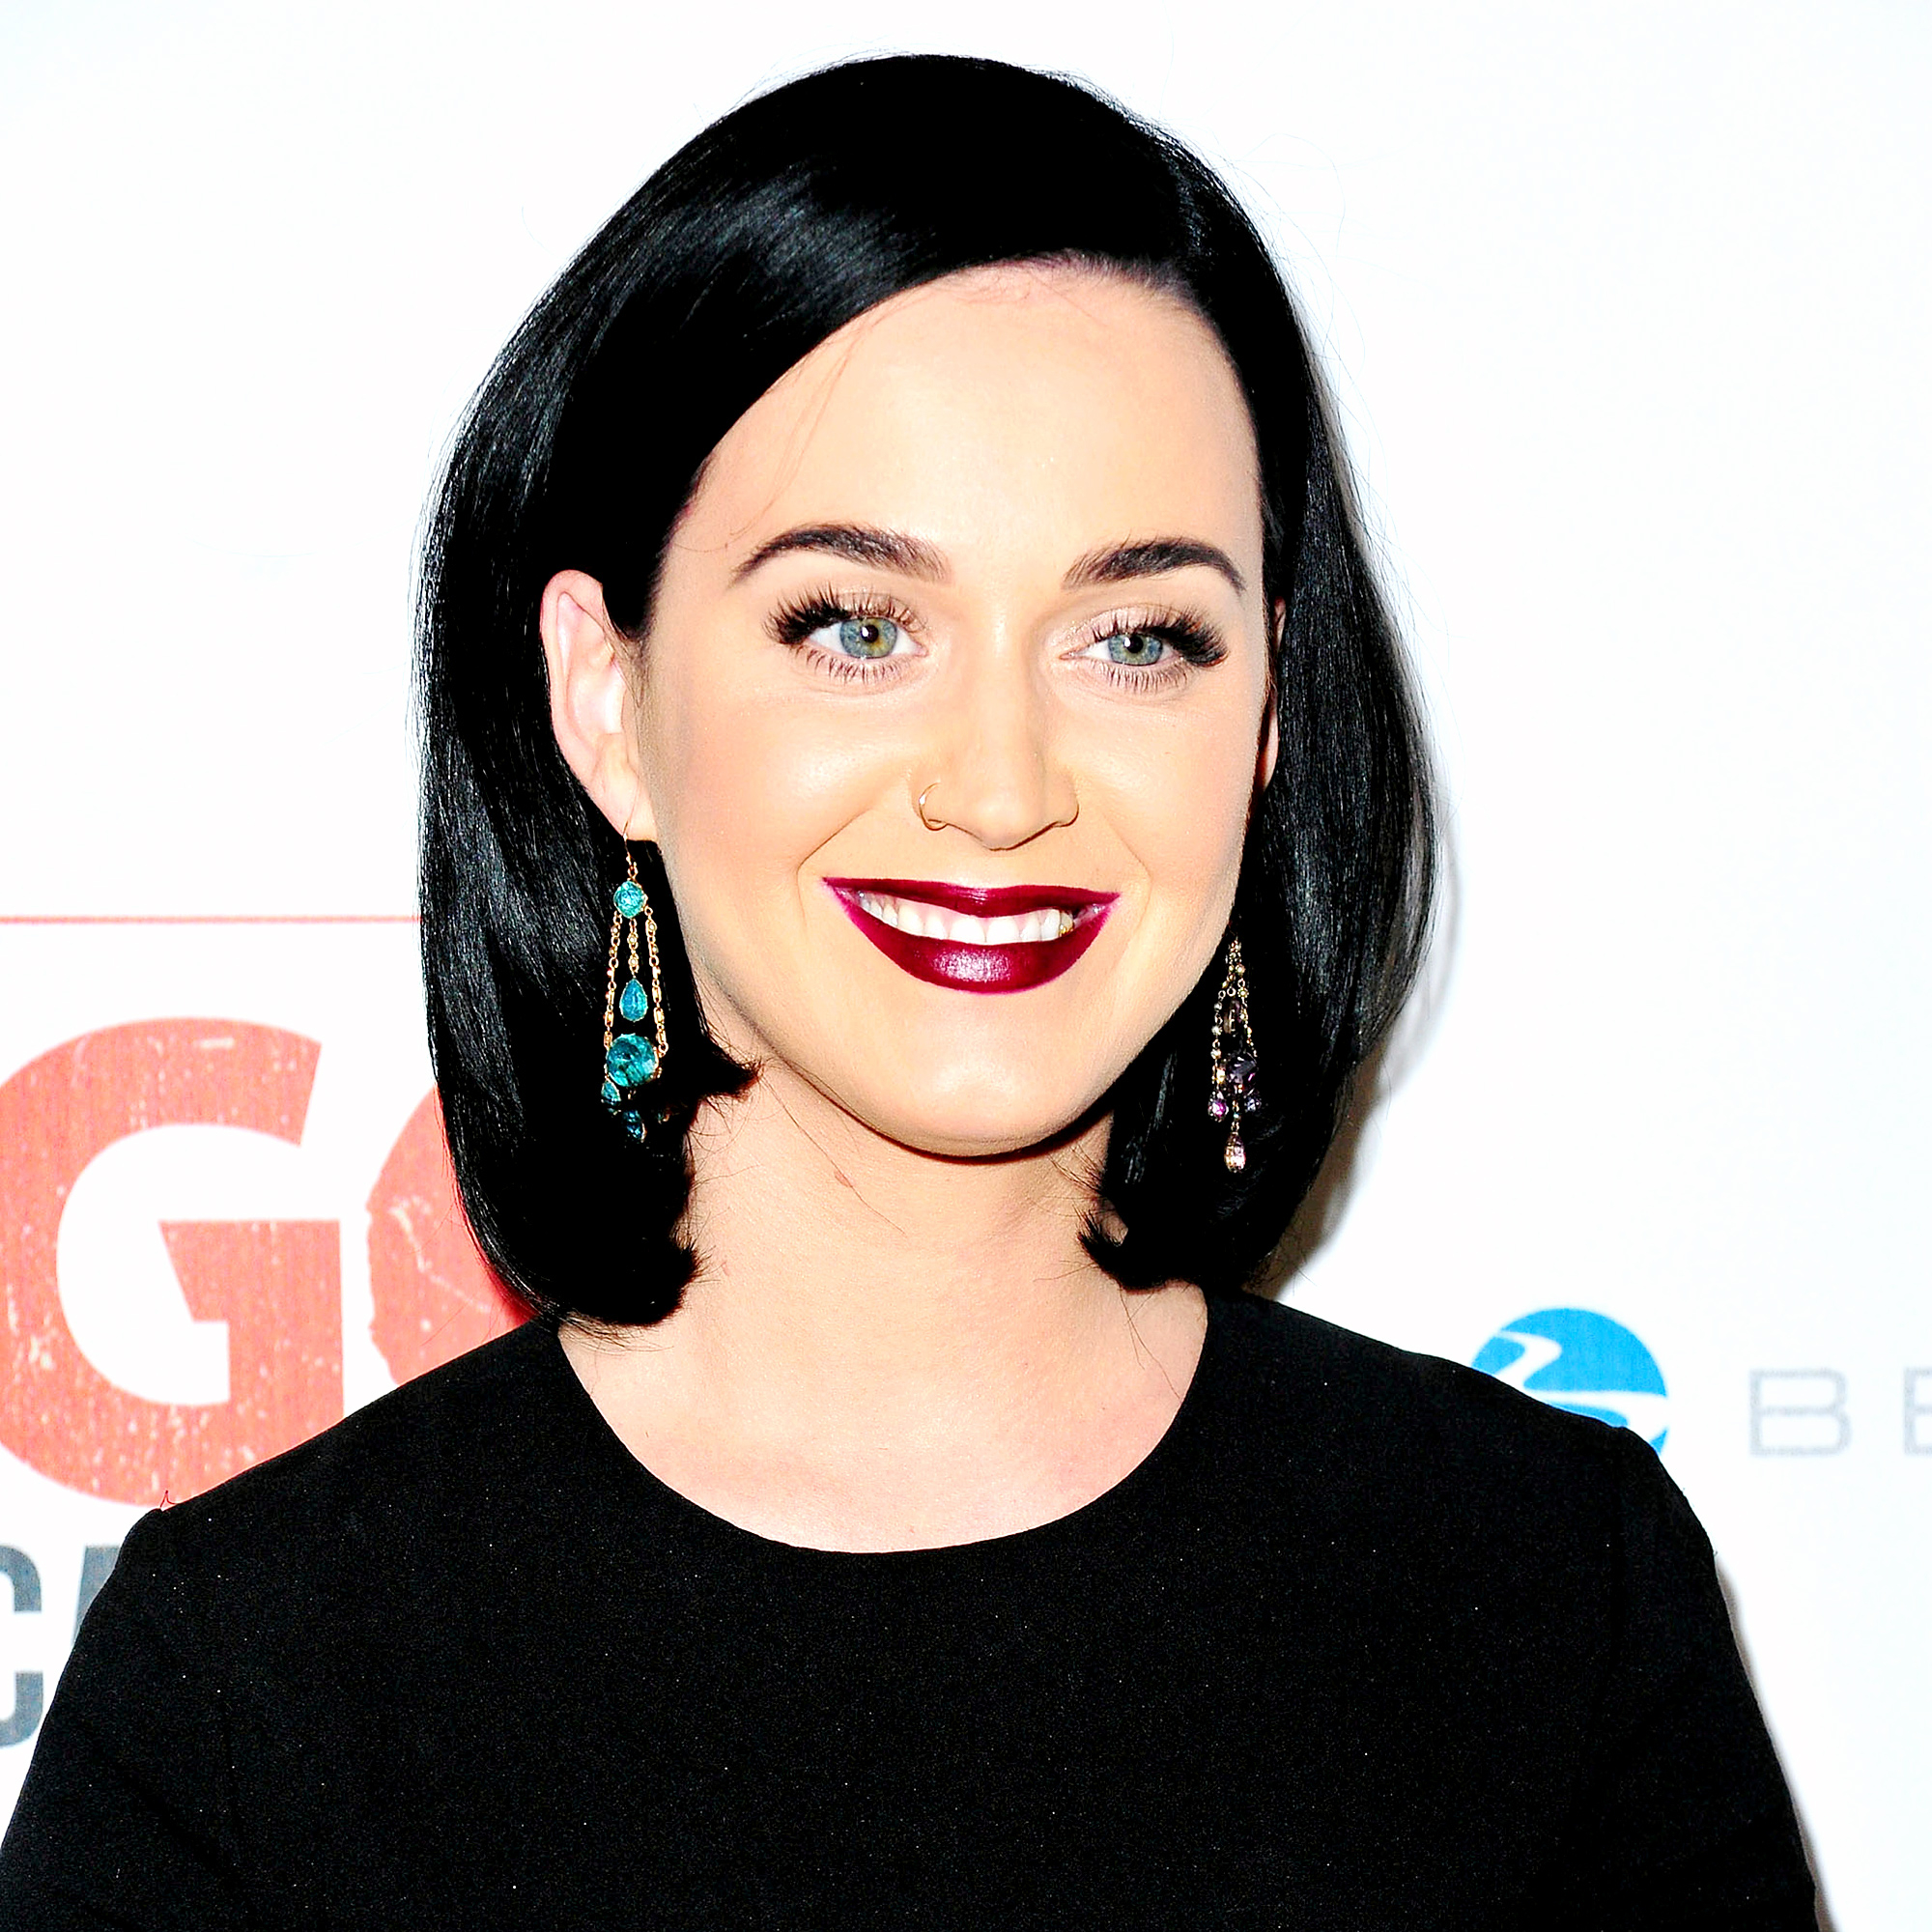 Katy Perry arrives at the 8th Annual GO Campaign Gala at Montage Beverly Hills on November 12, 2015 in Beverly Hills, California.